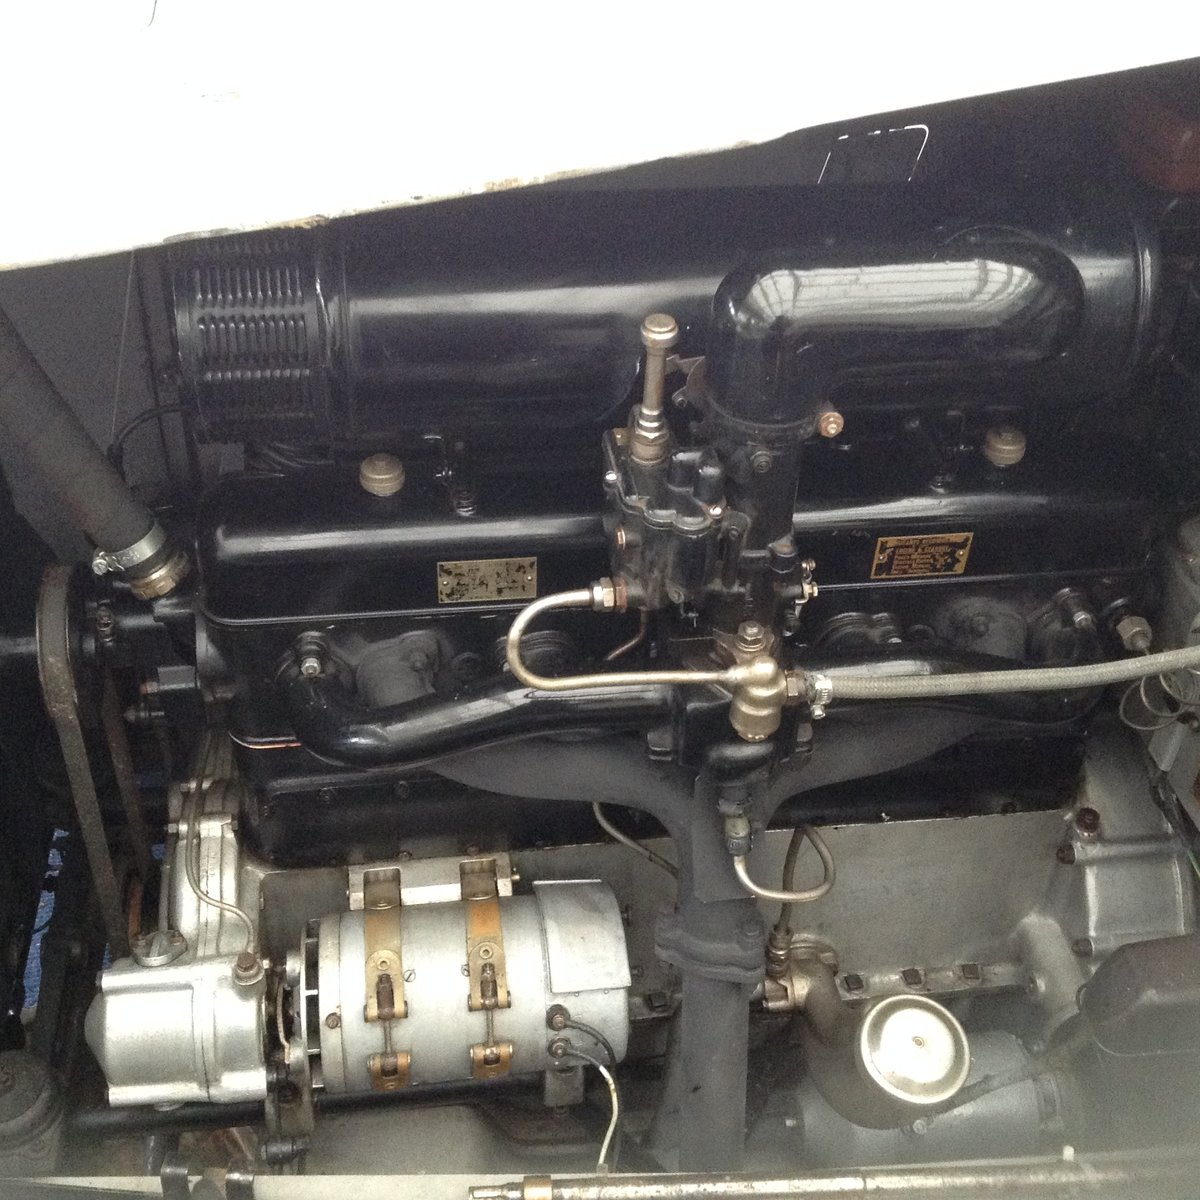 1936 Rolls Royce 25/30 Limo with glass division For Sale (picture 5 of 6)